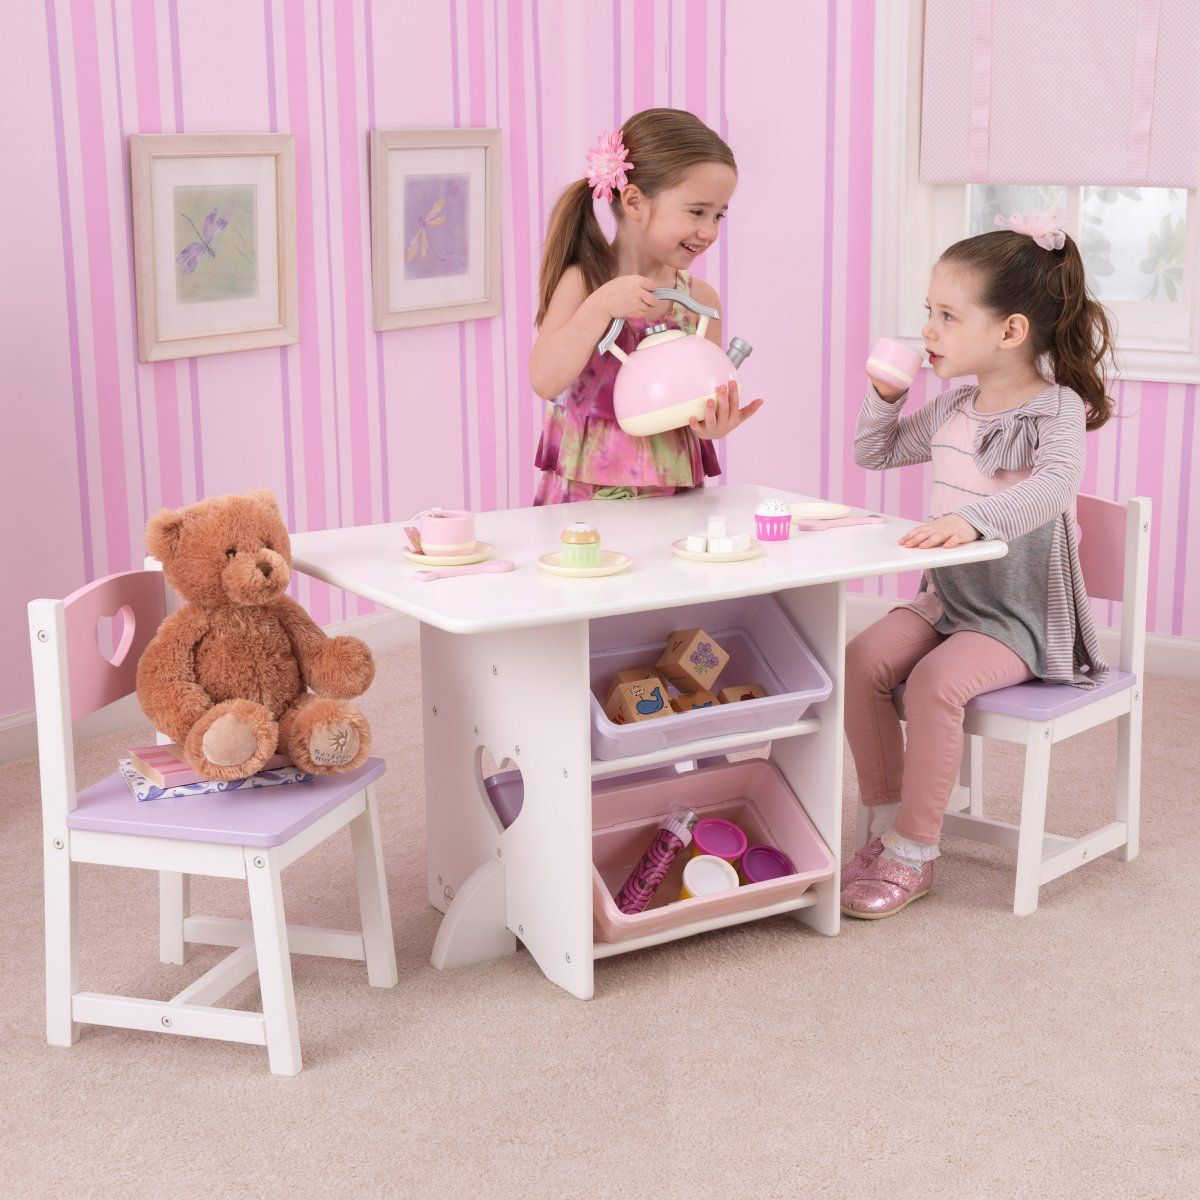 Kidkraft Heart Table And Chair Set Kidkraft Heart Table Set With Pastel Bins This One Is Really